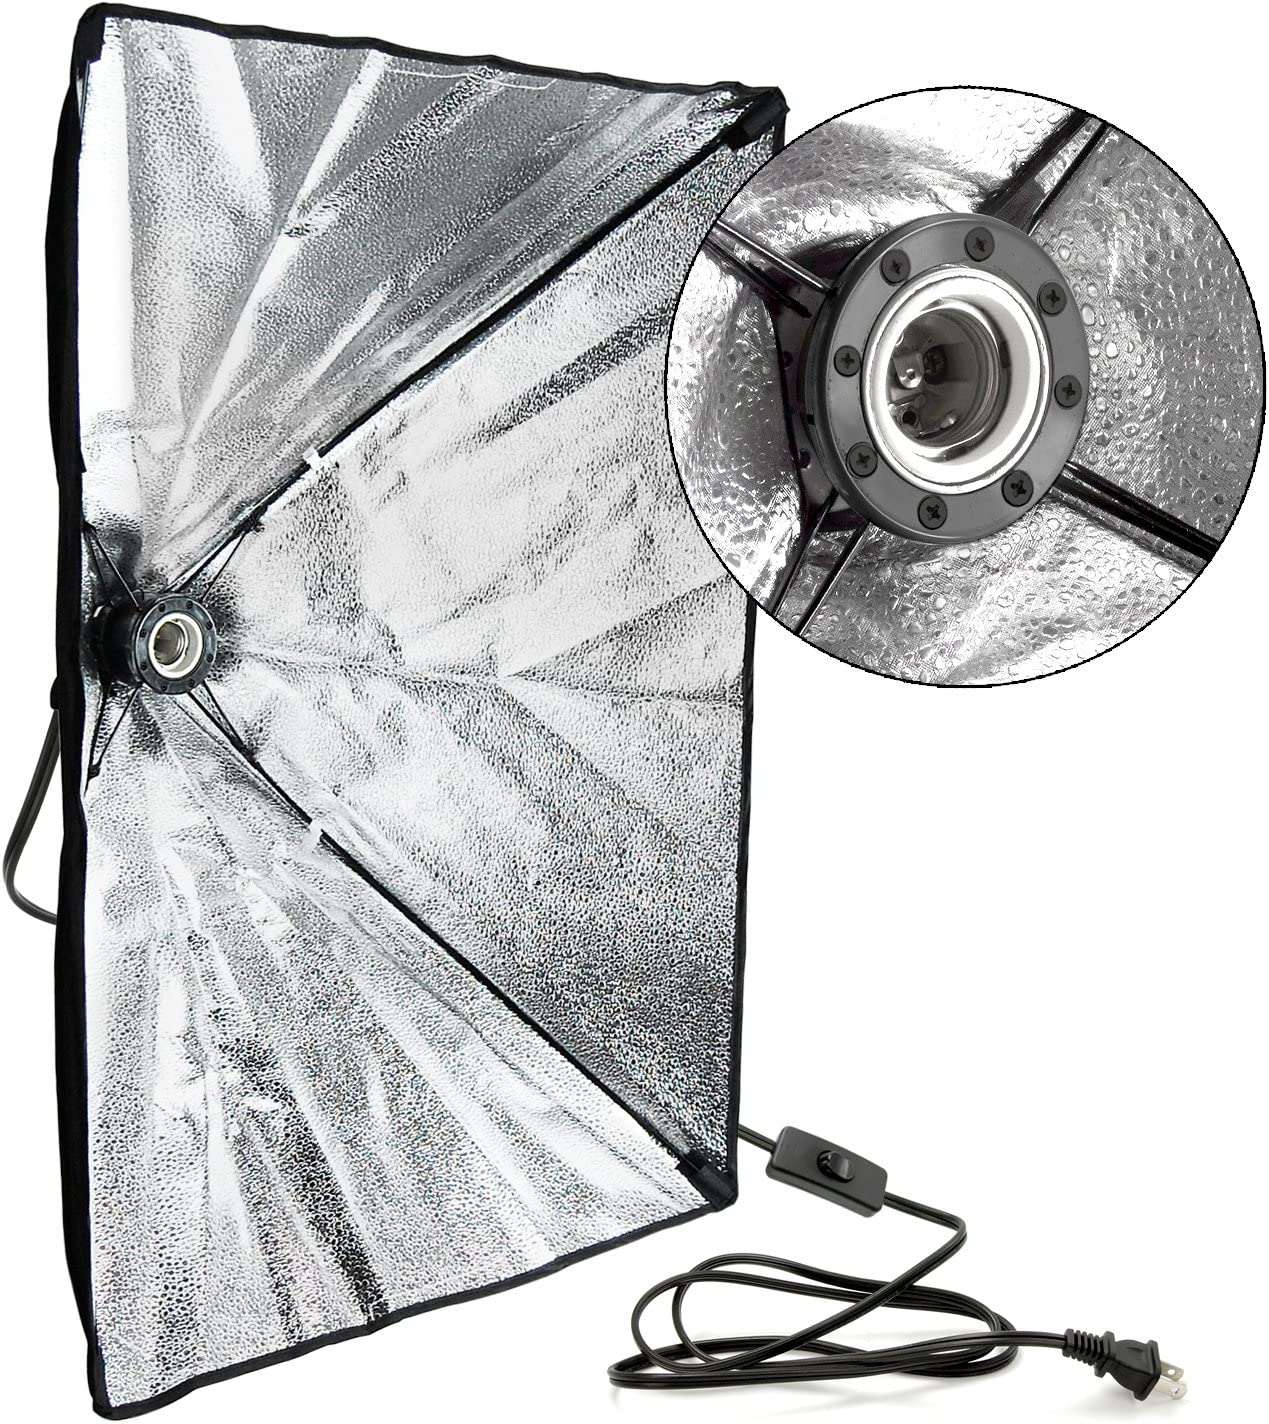 2 Set 20 x 28 inch Dimension Soft Box with Built-in Single Bulb Socket with 85 Watt Light Bulb AGG2557 LimoStudio Photo Video Studio